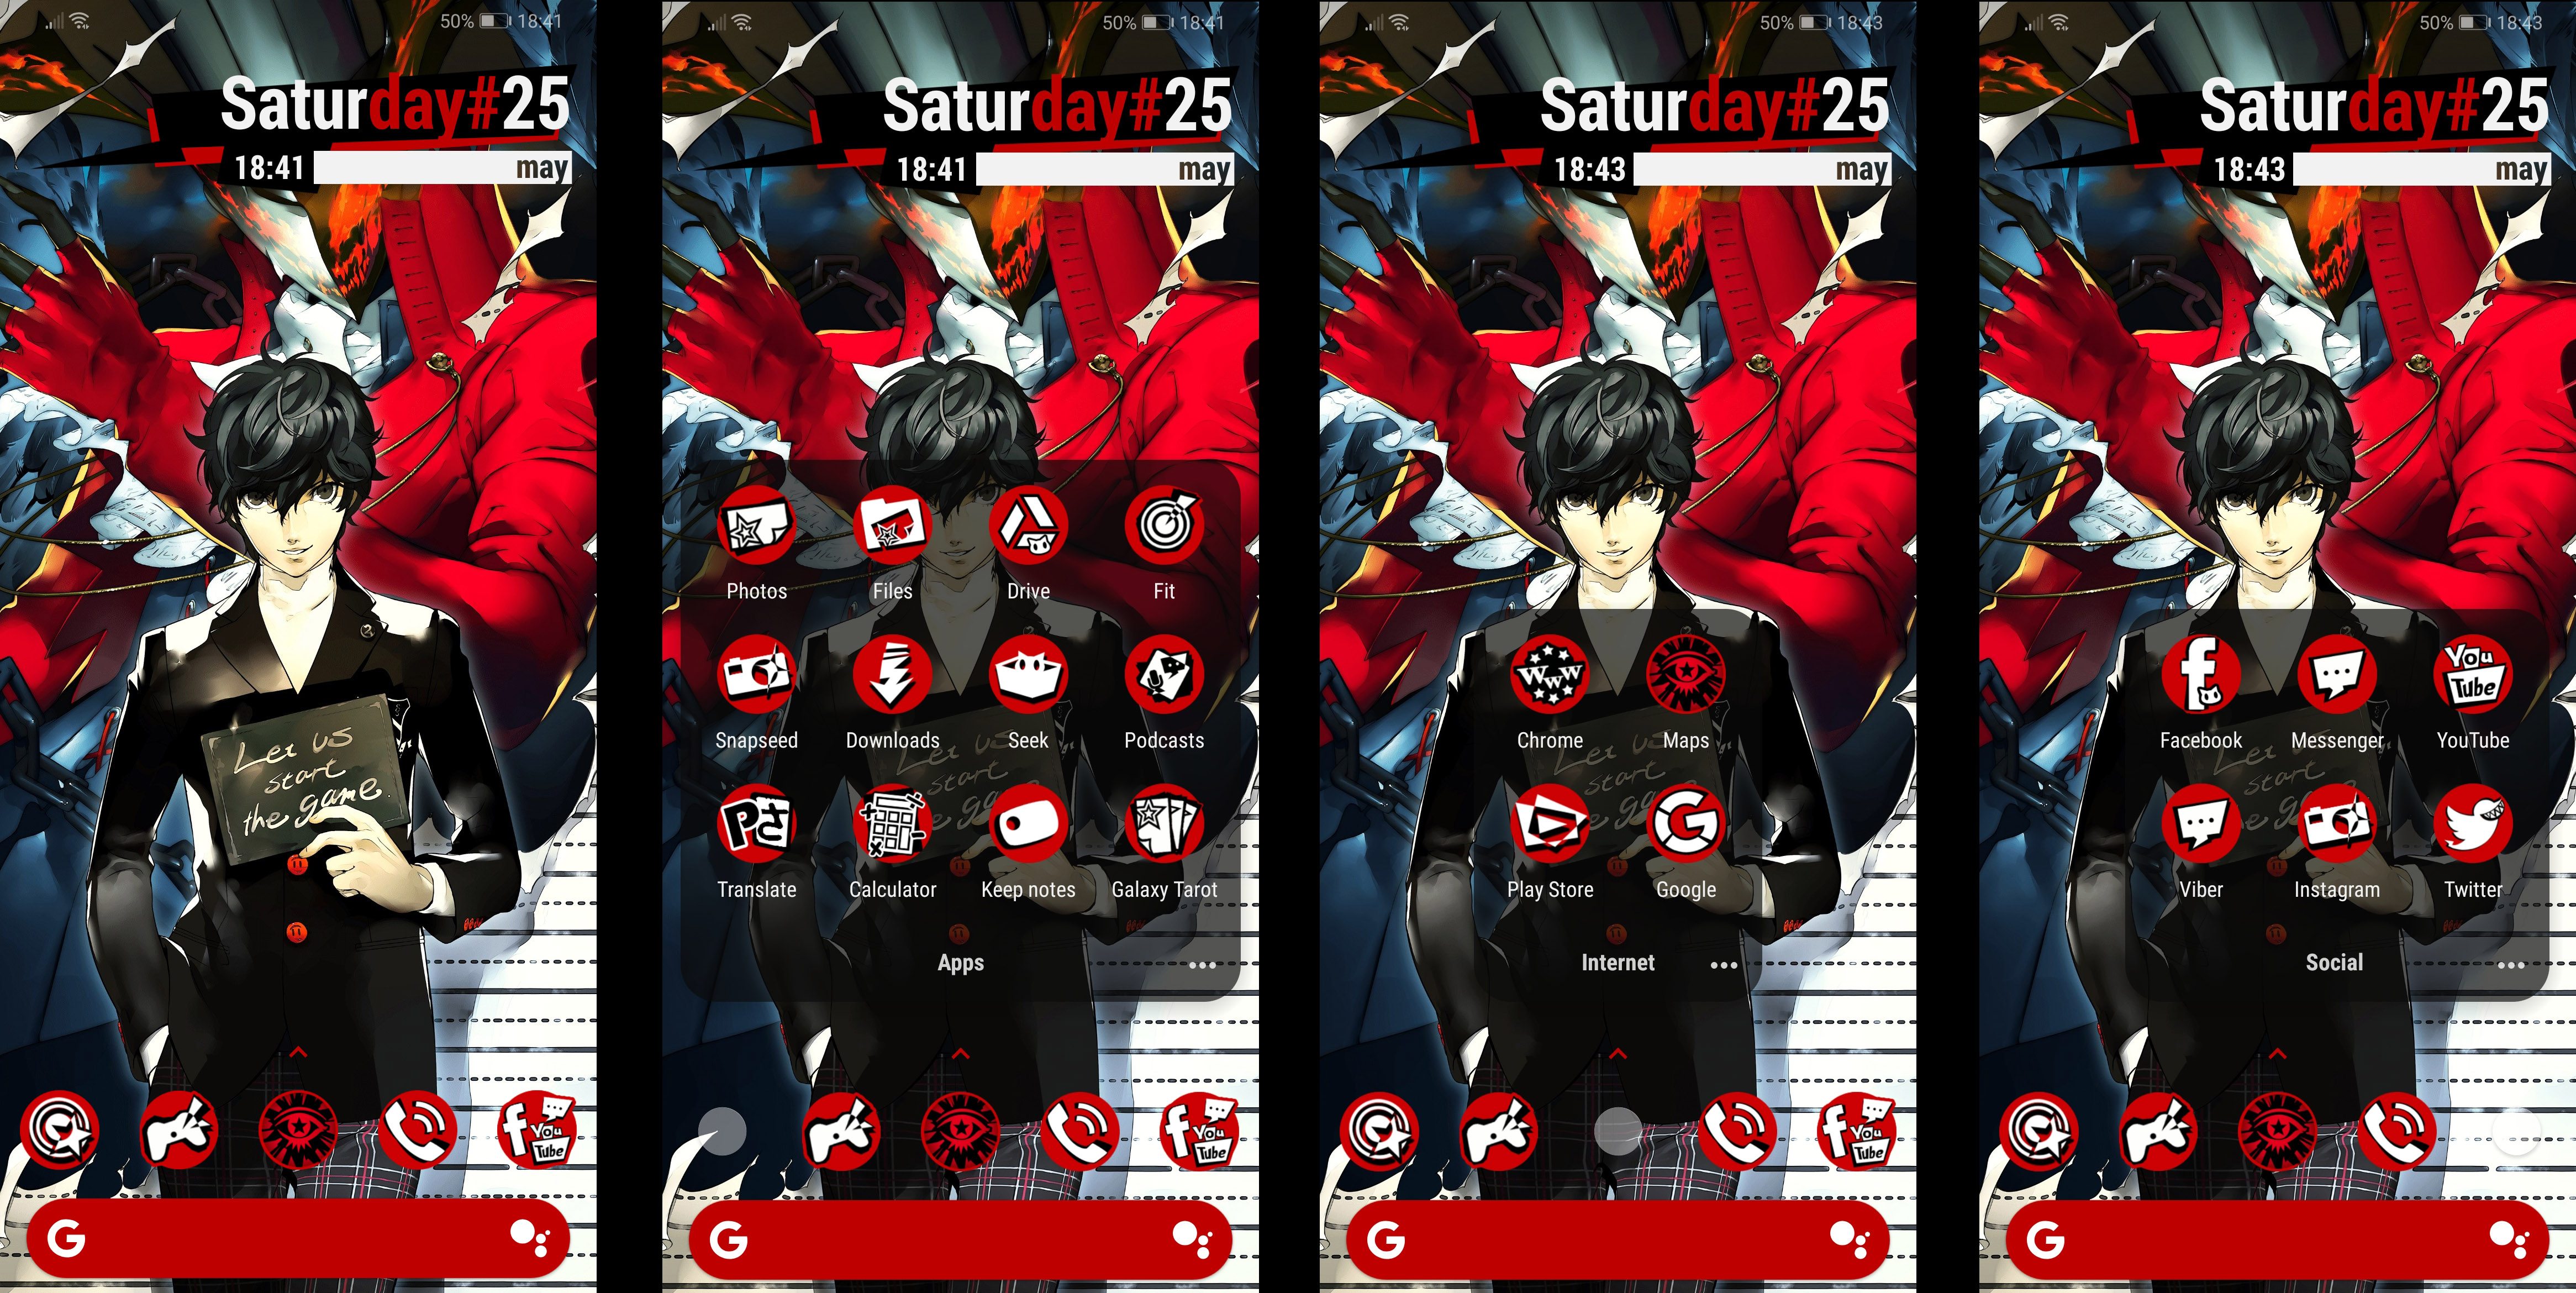 Persona 5 Android Theme Icons And Widget Clock By Fotis Sora On Deviantart